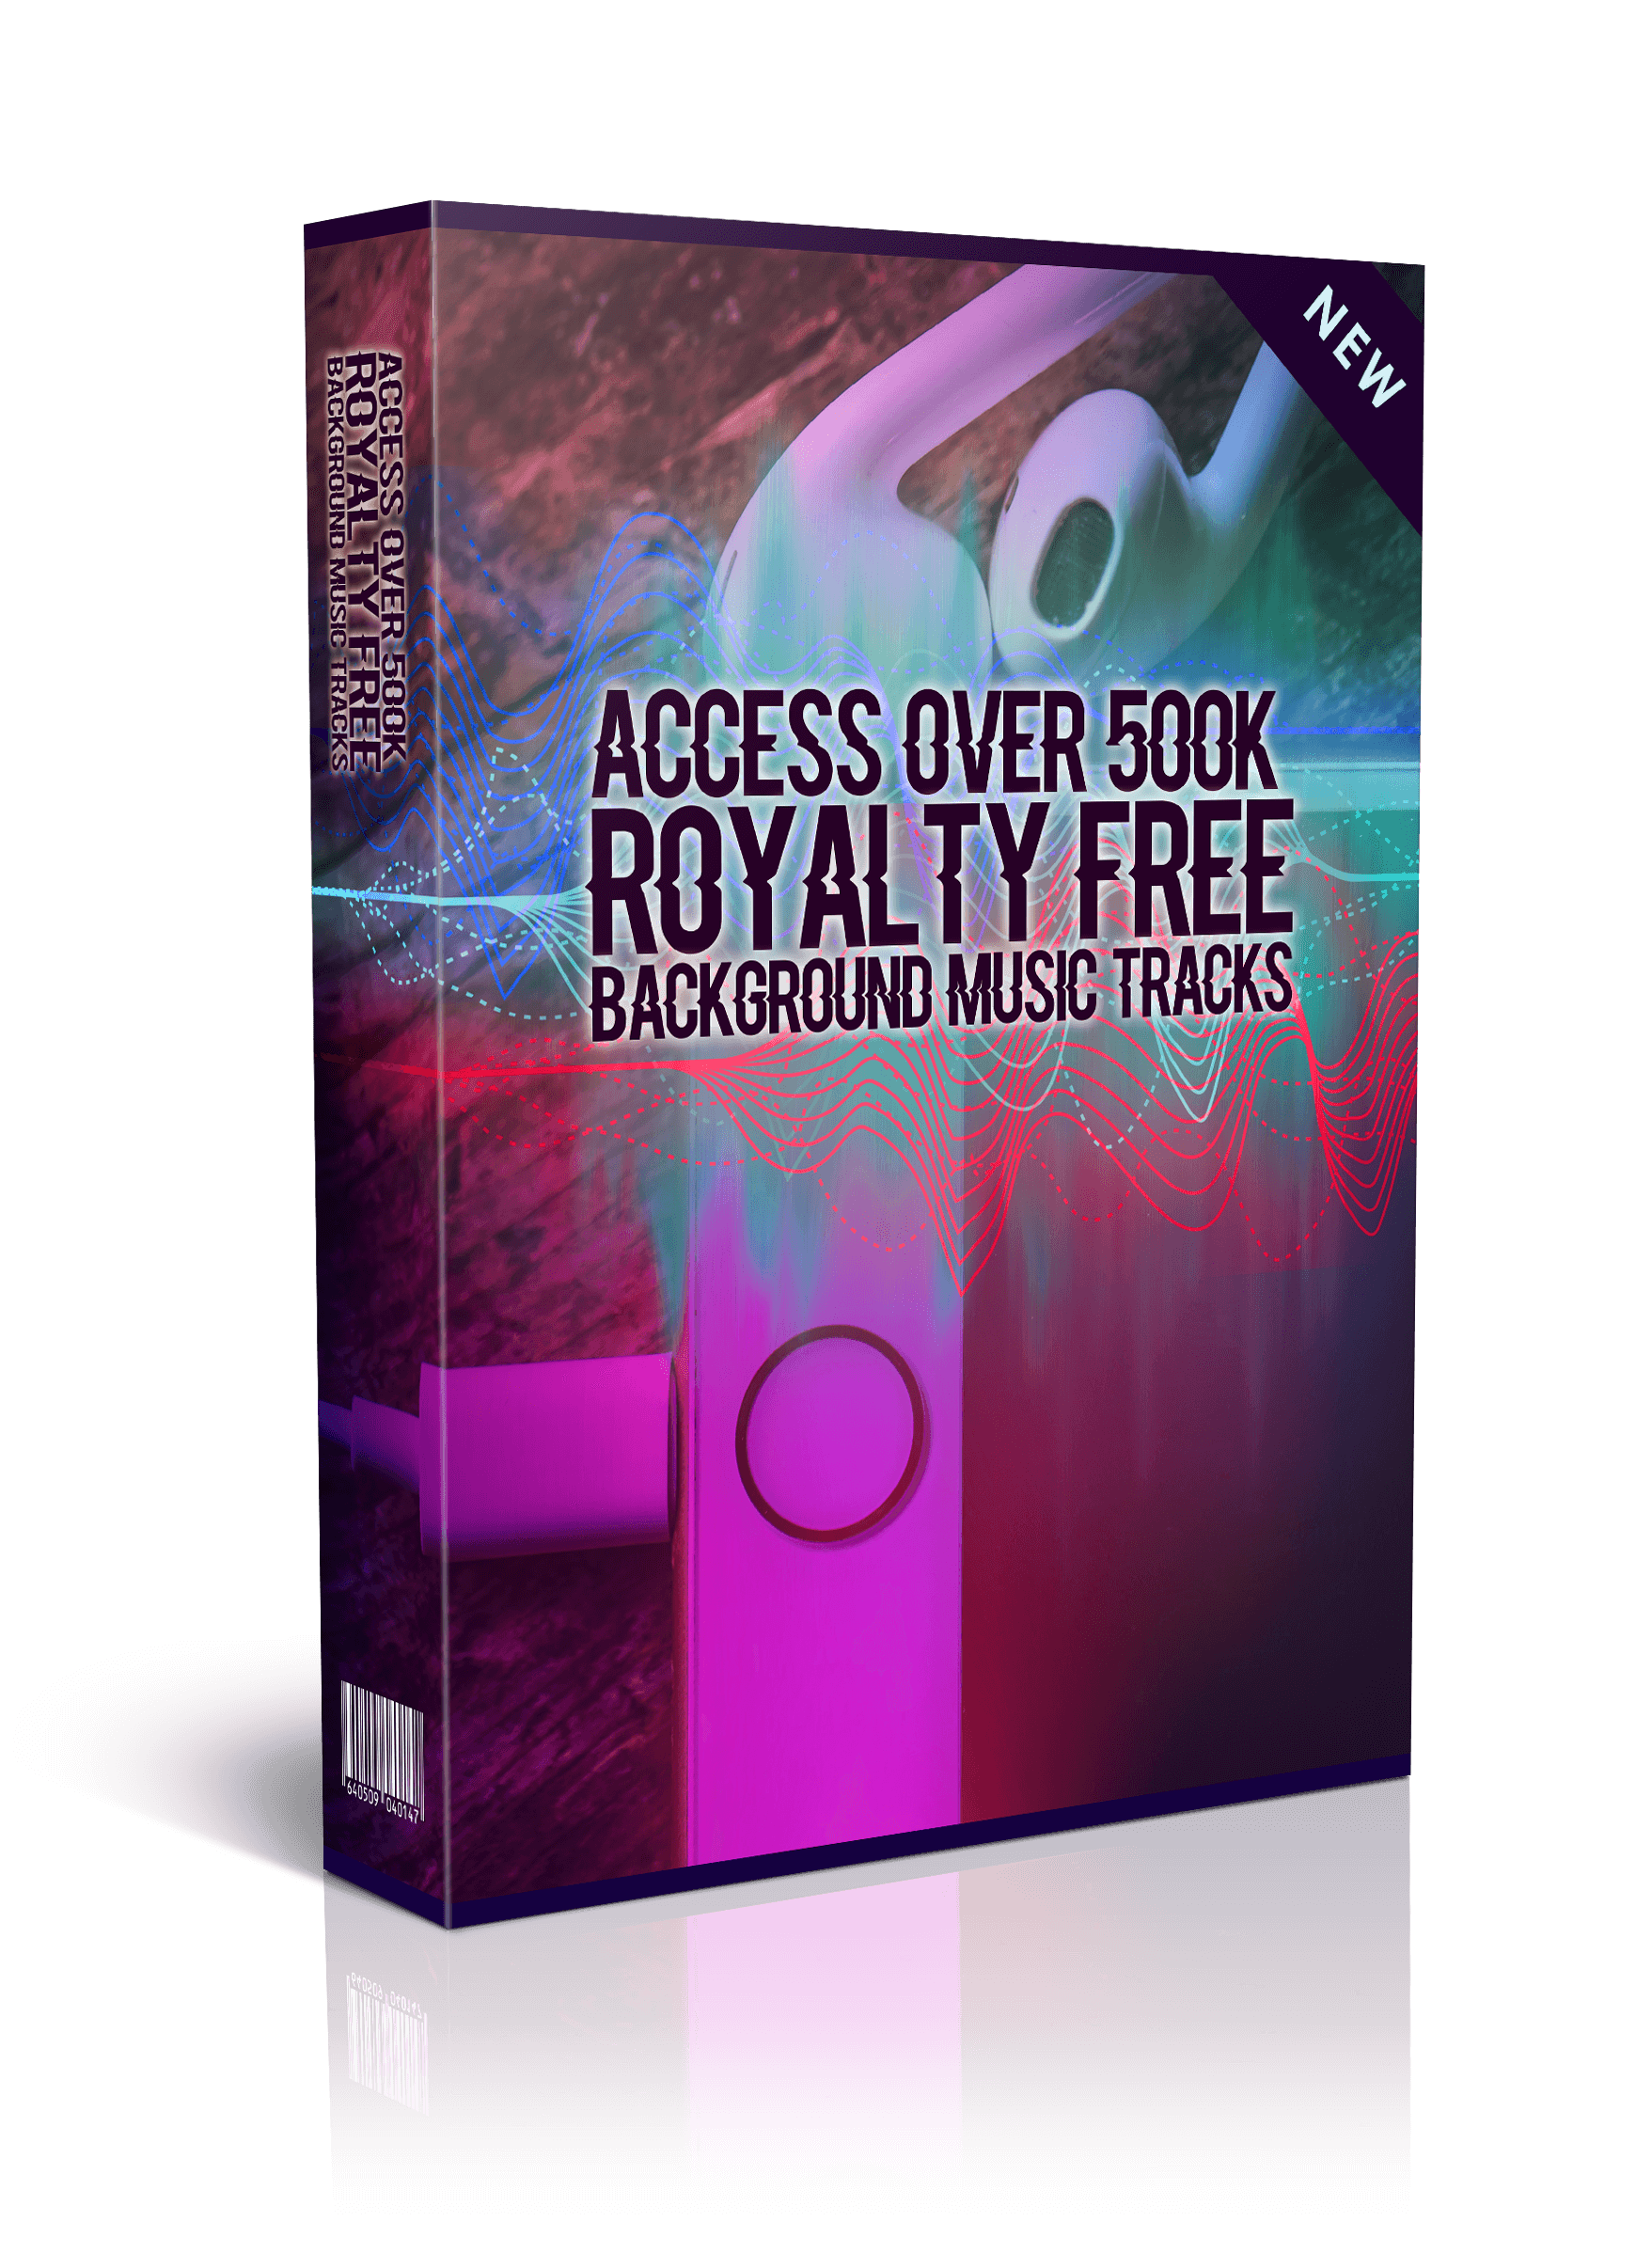 Access-Over-500k-Royalty-Free-Background-Mucic-Tracks_boxcover